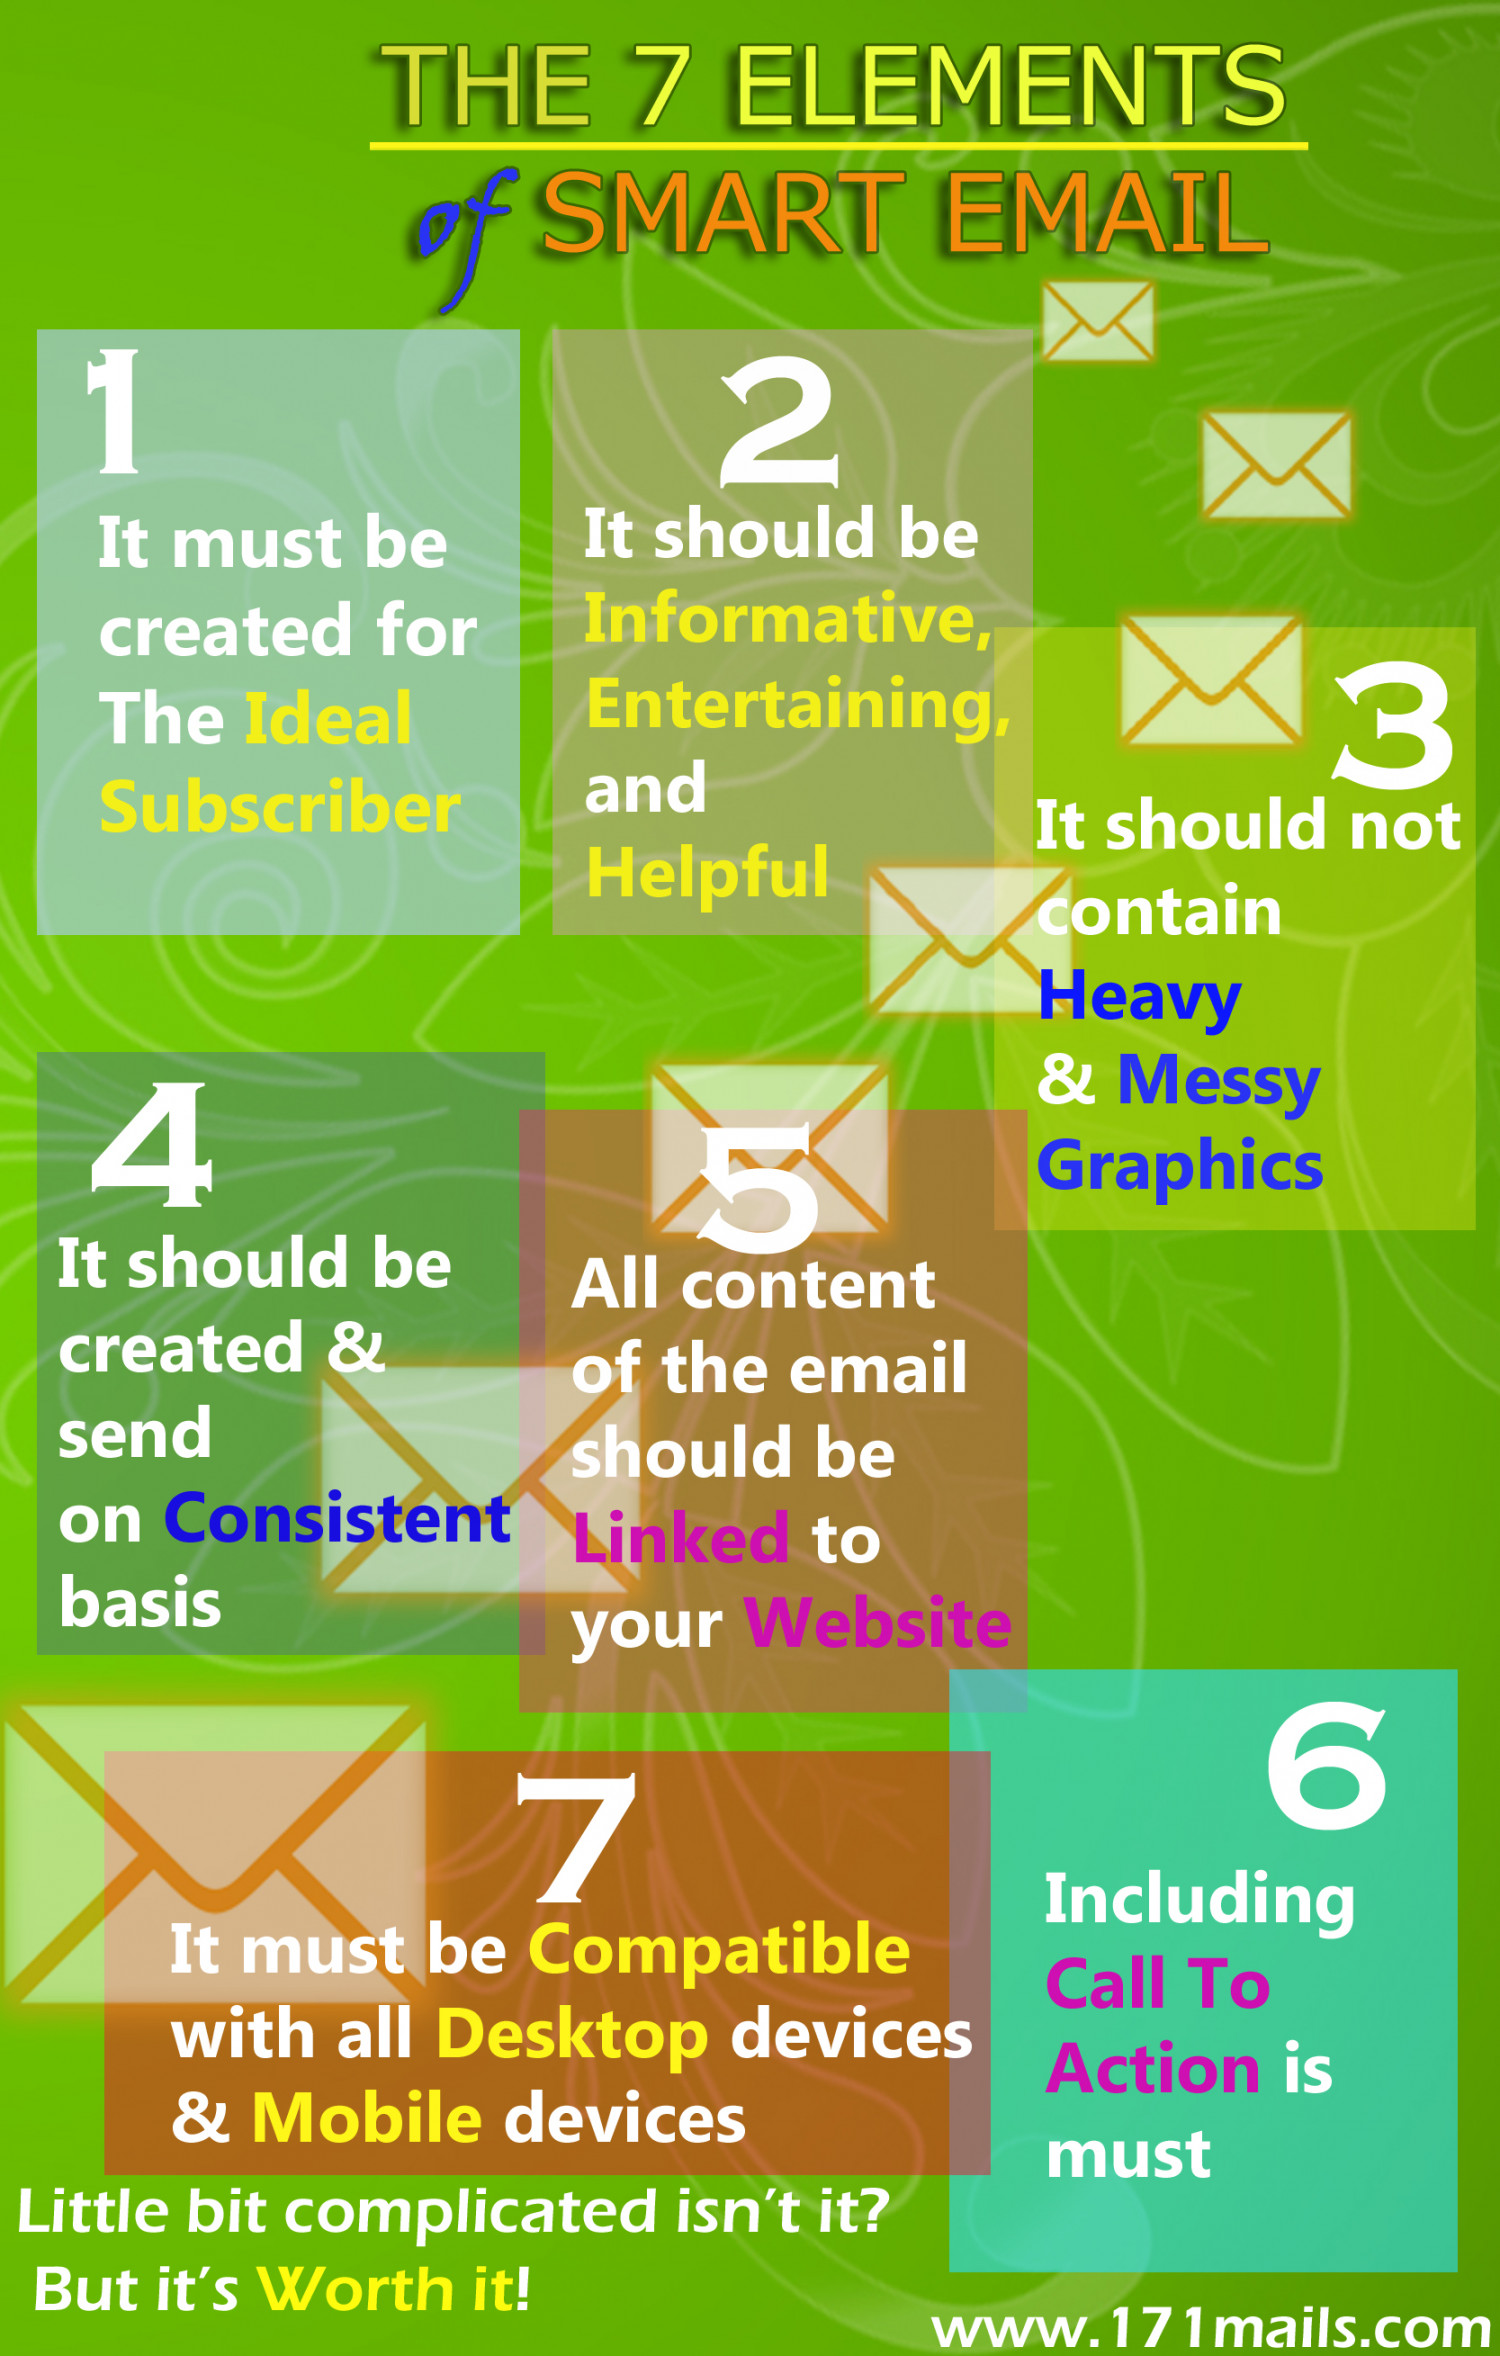 The 7 Elements of Smart Email Infographic